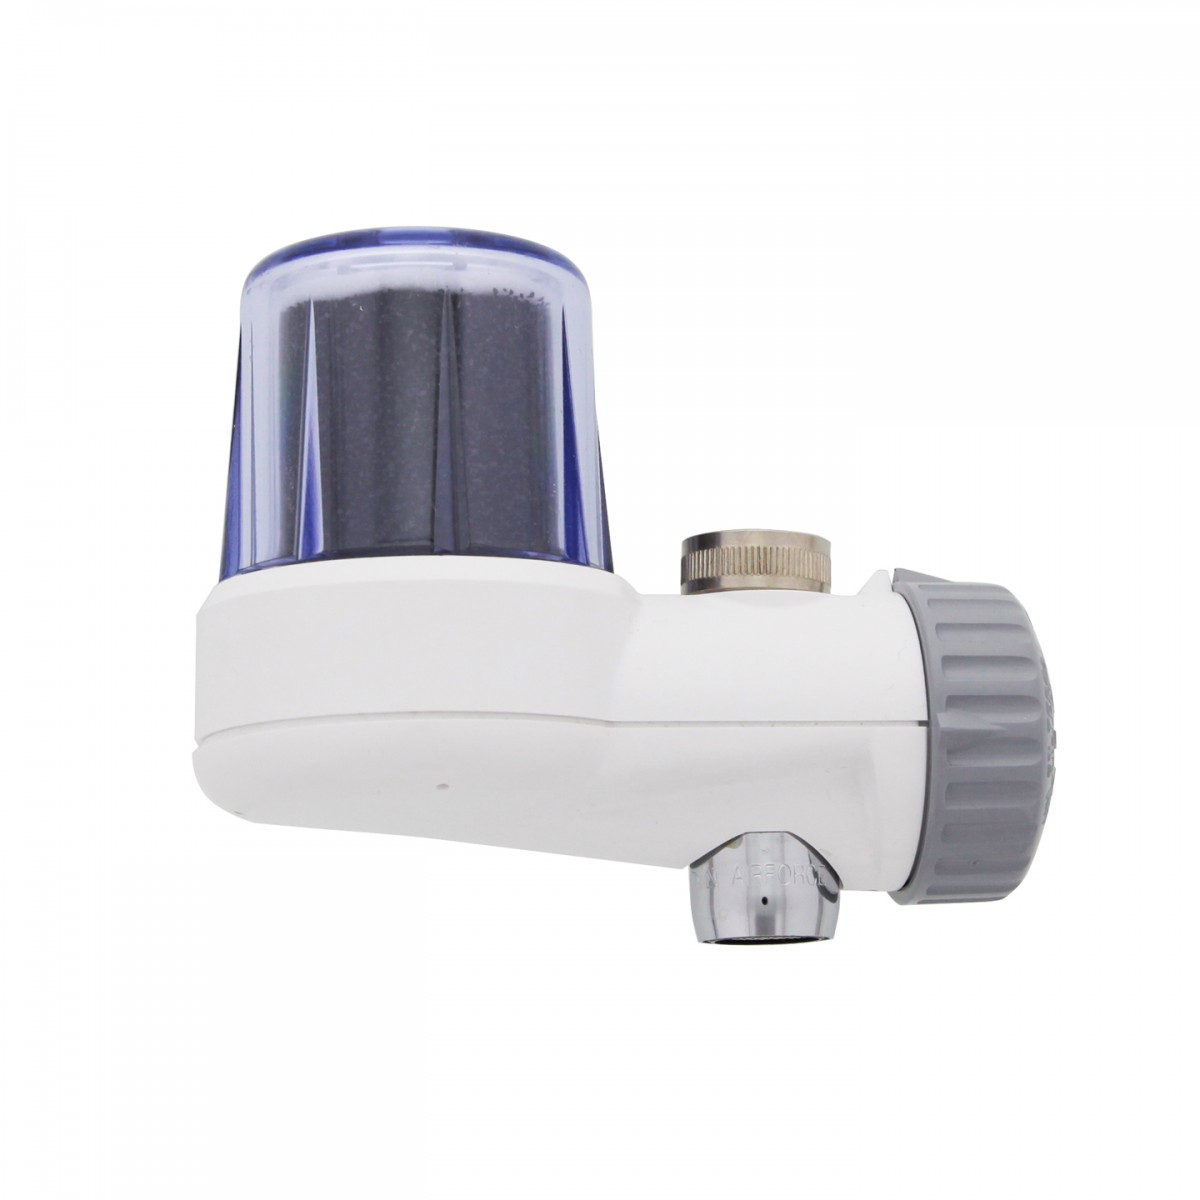 Omni F1 Faucet Water Filter and OmniFilter F1 Faucet Filtration System